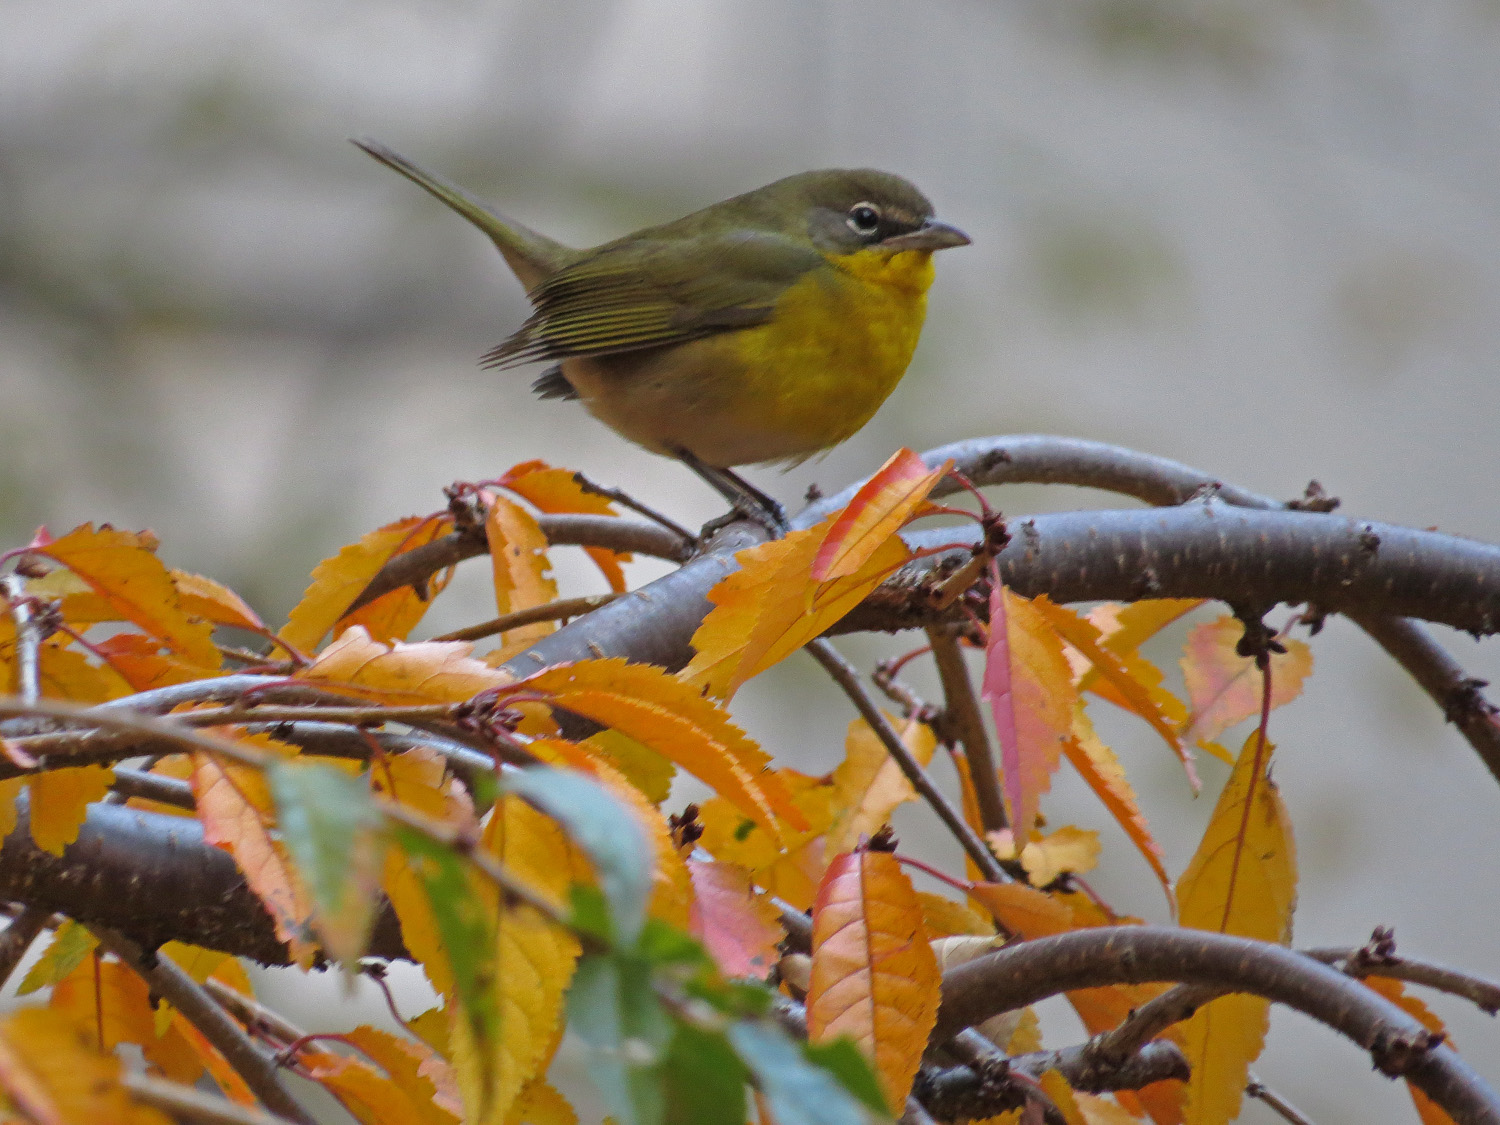 Yellow-breasted chat at Trinity Church cemetery, Nov. 18, 2016